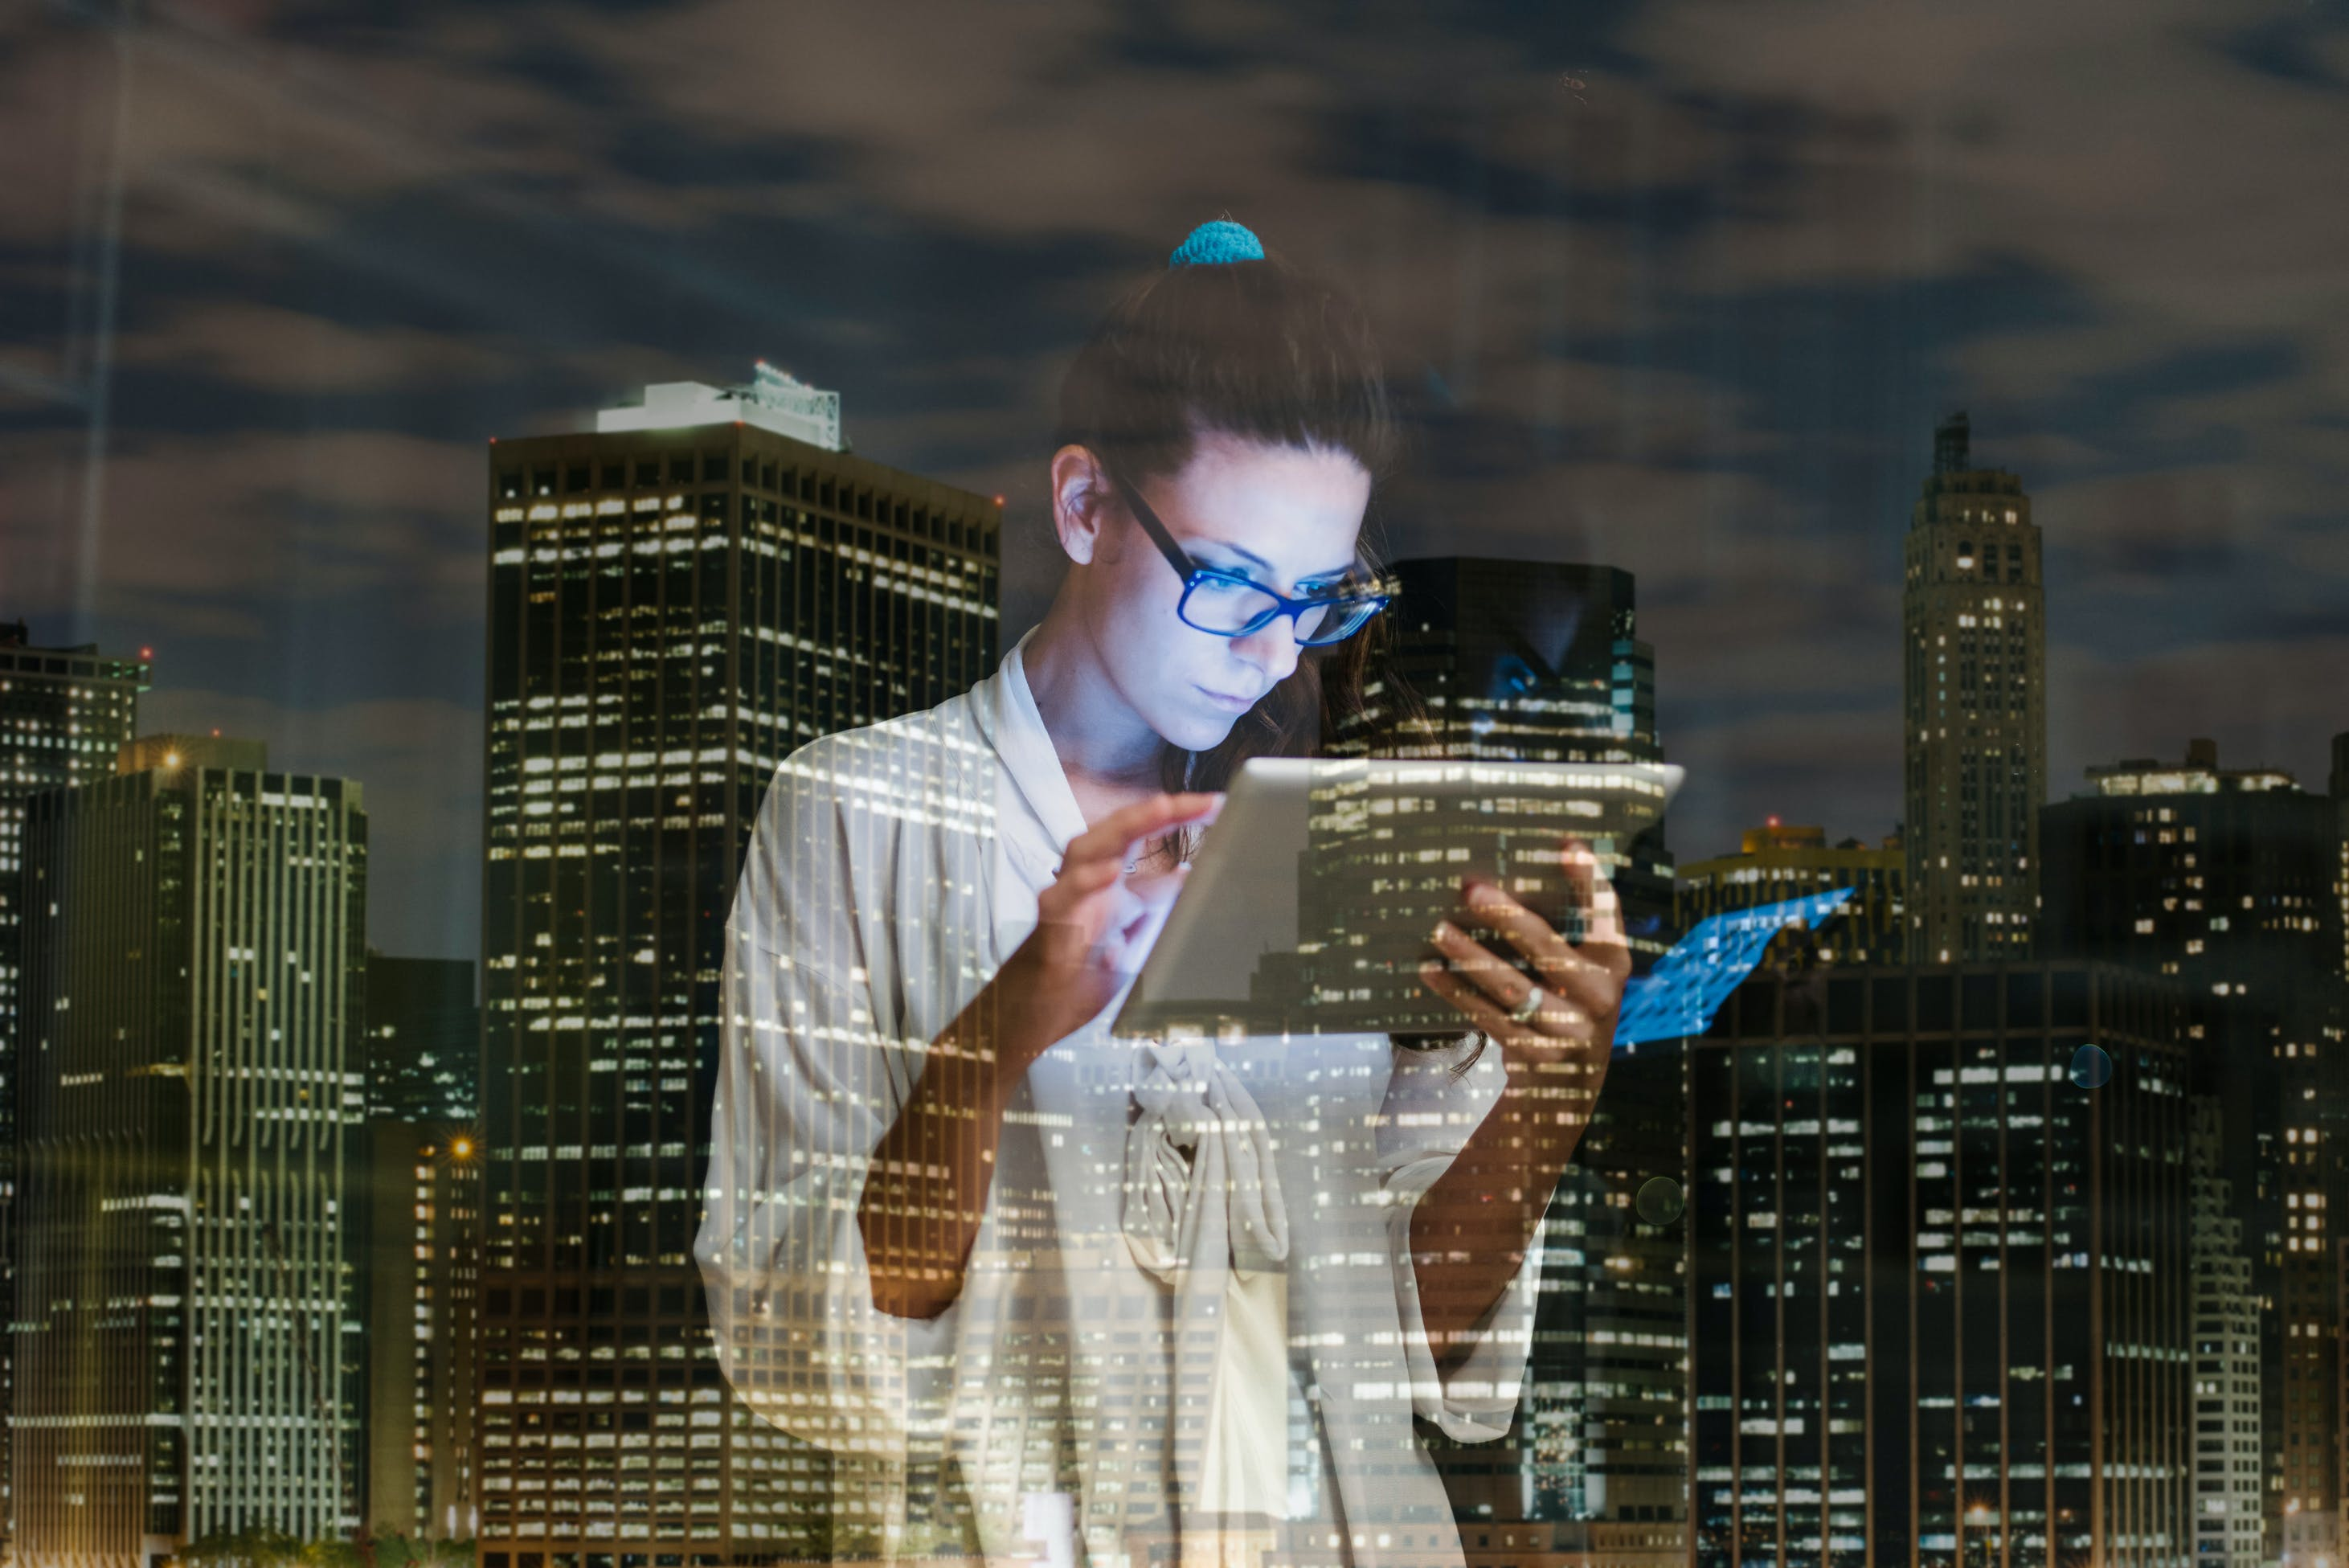 Photo: Female looking at tablet with city background